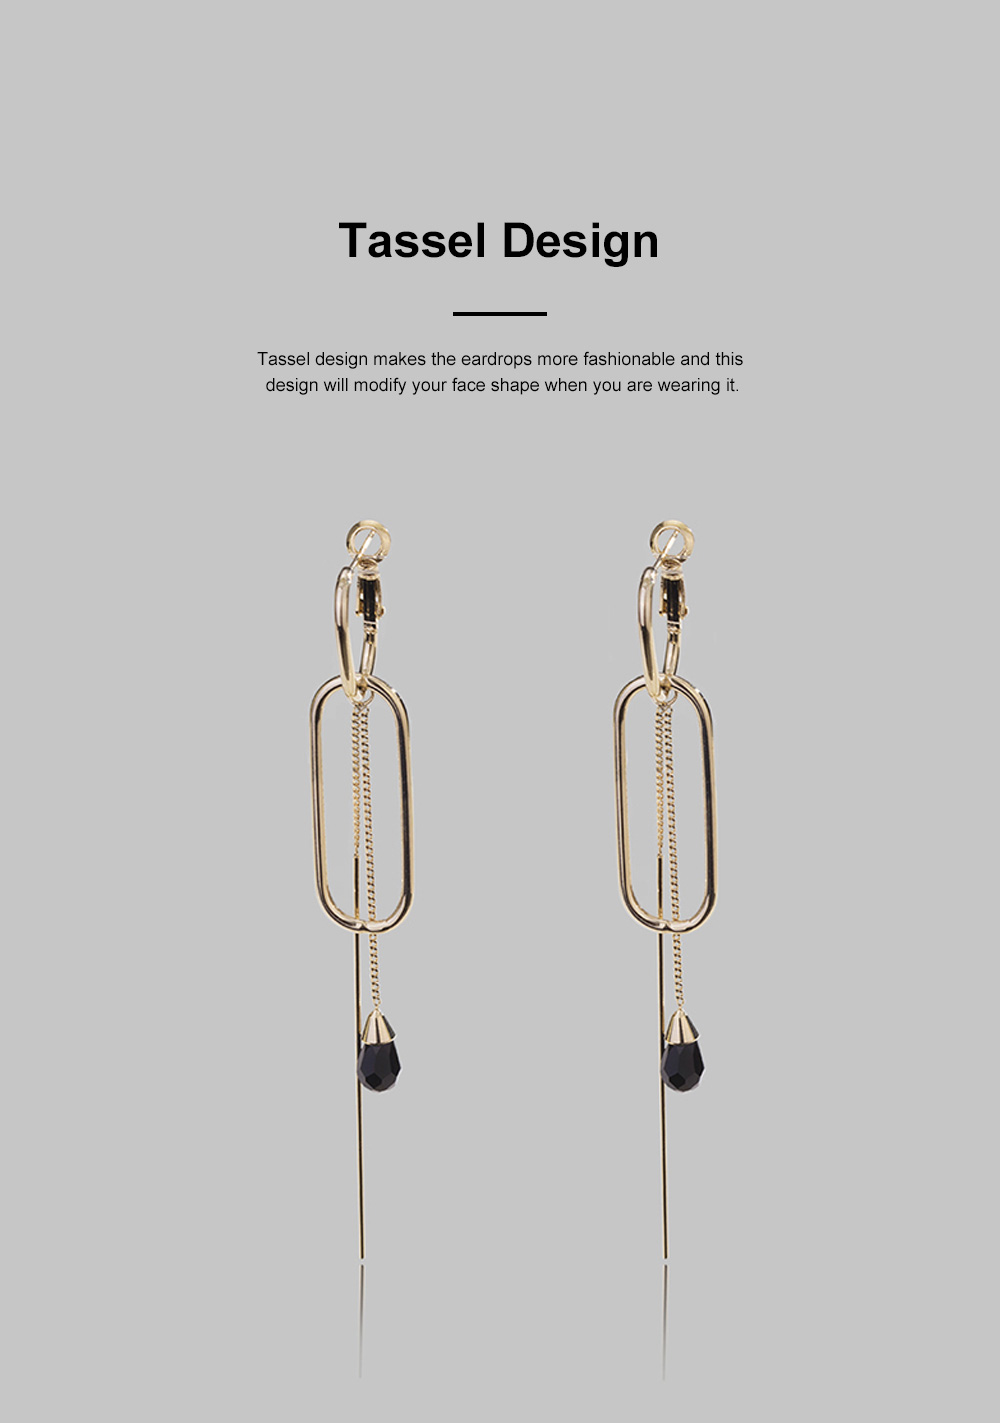 CAROMAY Minimalist Vintage Elegant Tassel Hollow Model Earrings Eardrops with Synthetic Crystal Decoration Delicate Electroplating Coating 2